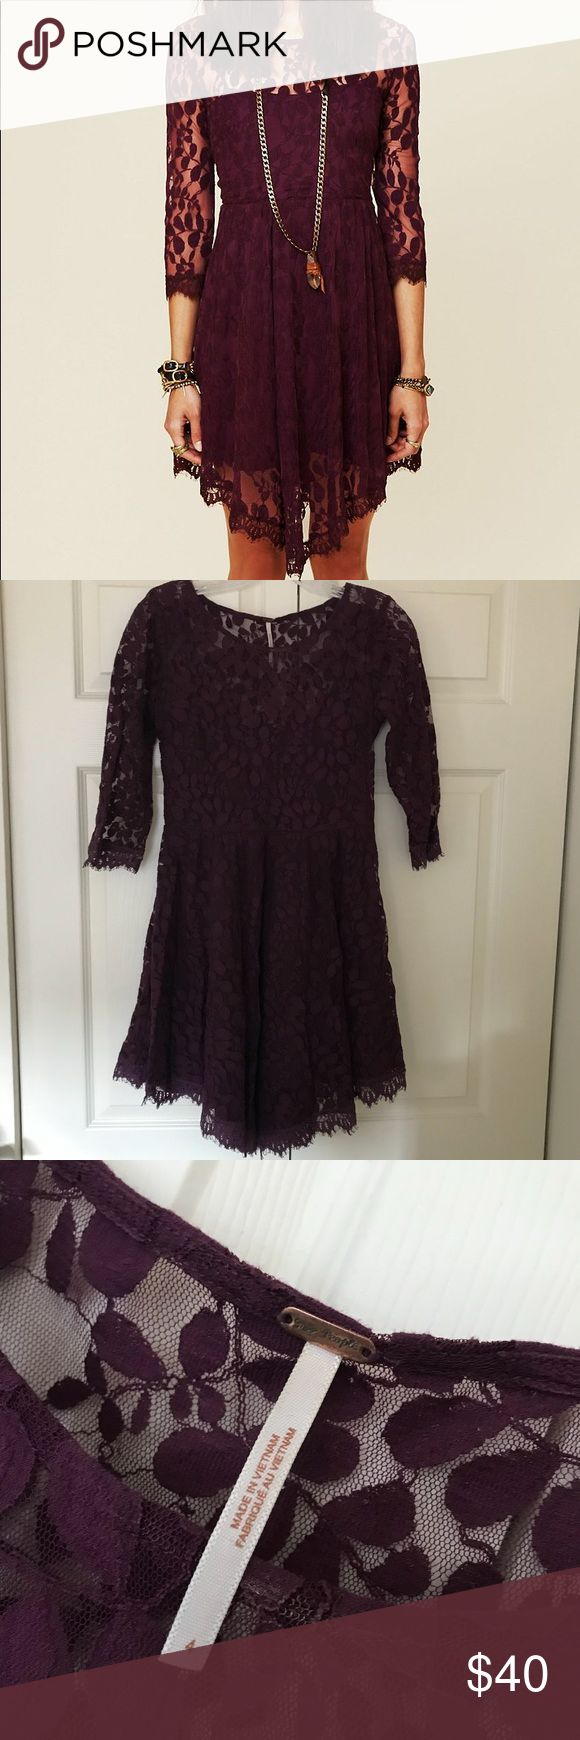 Free People Floral Mesh Lace Dress in Purple mini dress with attached lining • approx 35 inches long • in like new condition, worn a handful of times • love the dress, only selling because it's too small on me • fit & flare style • will consider reasonable offers Free People Dresses Mini